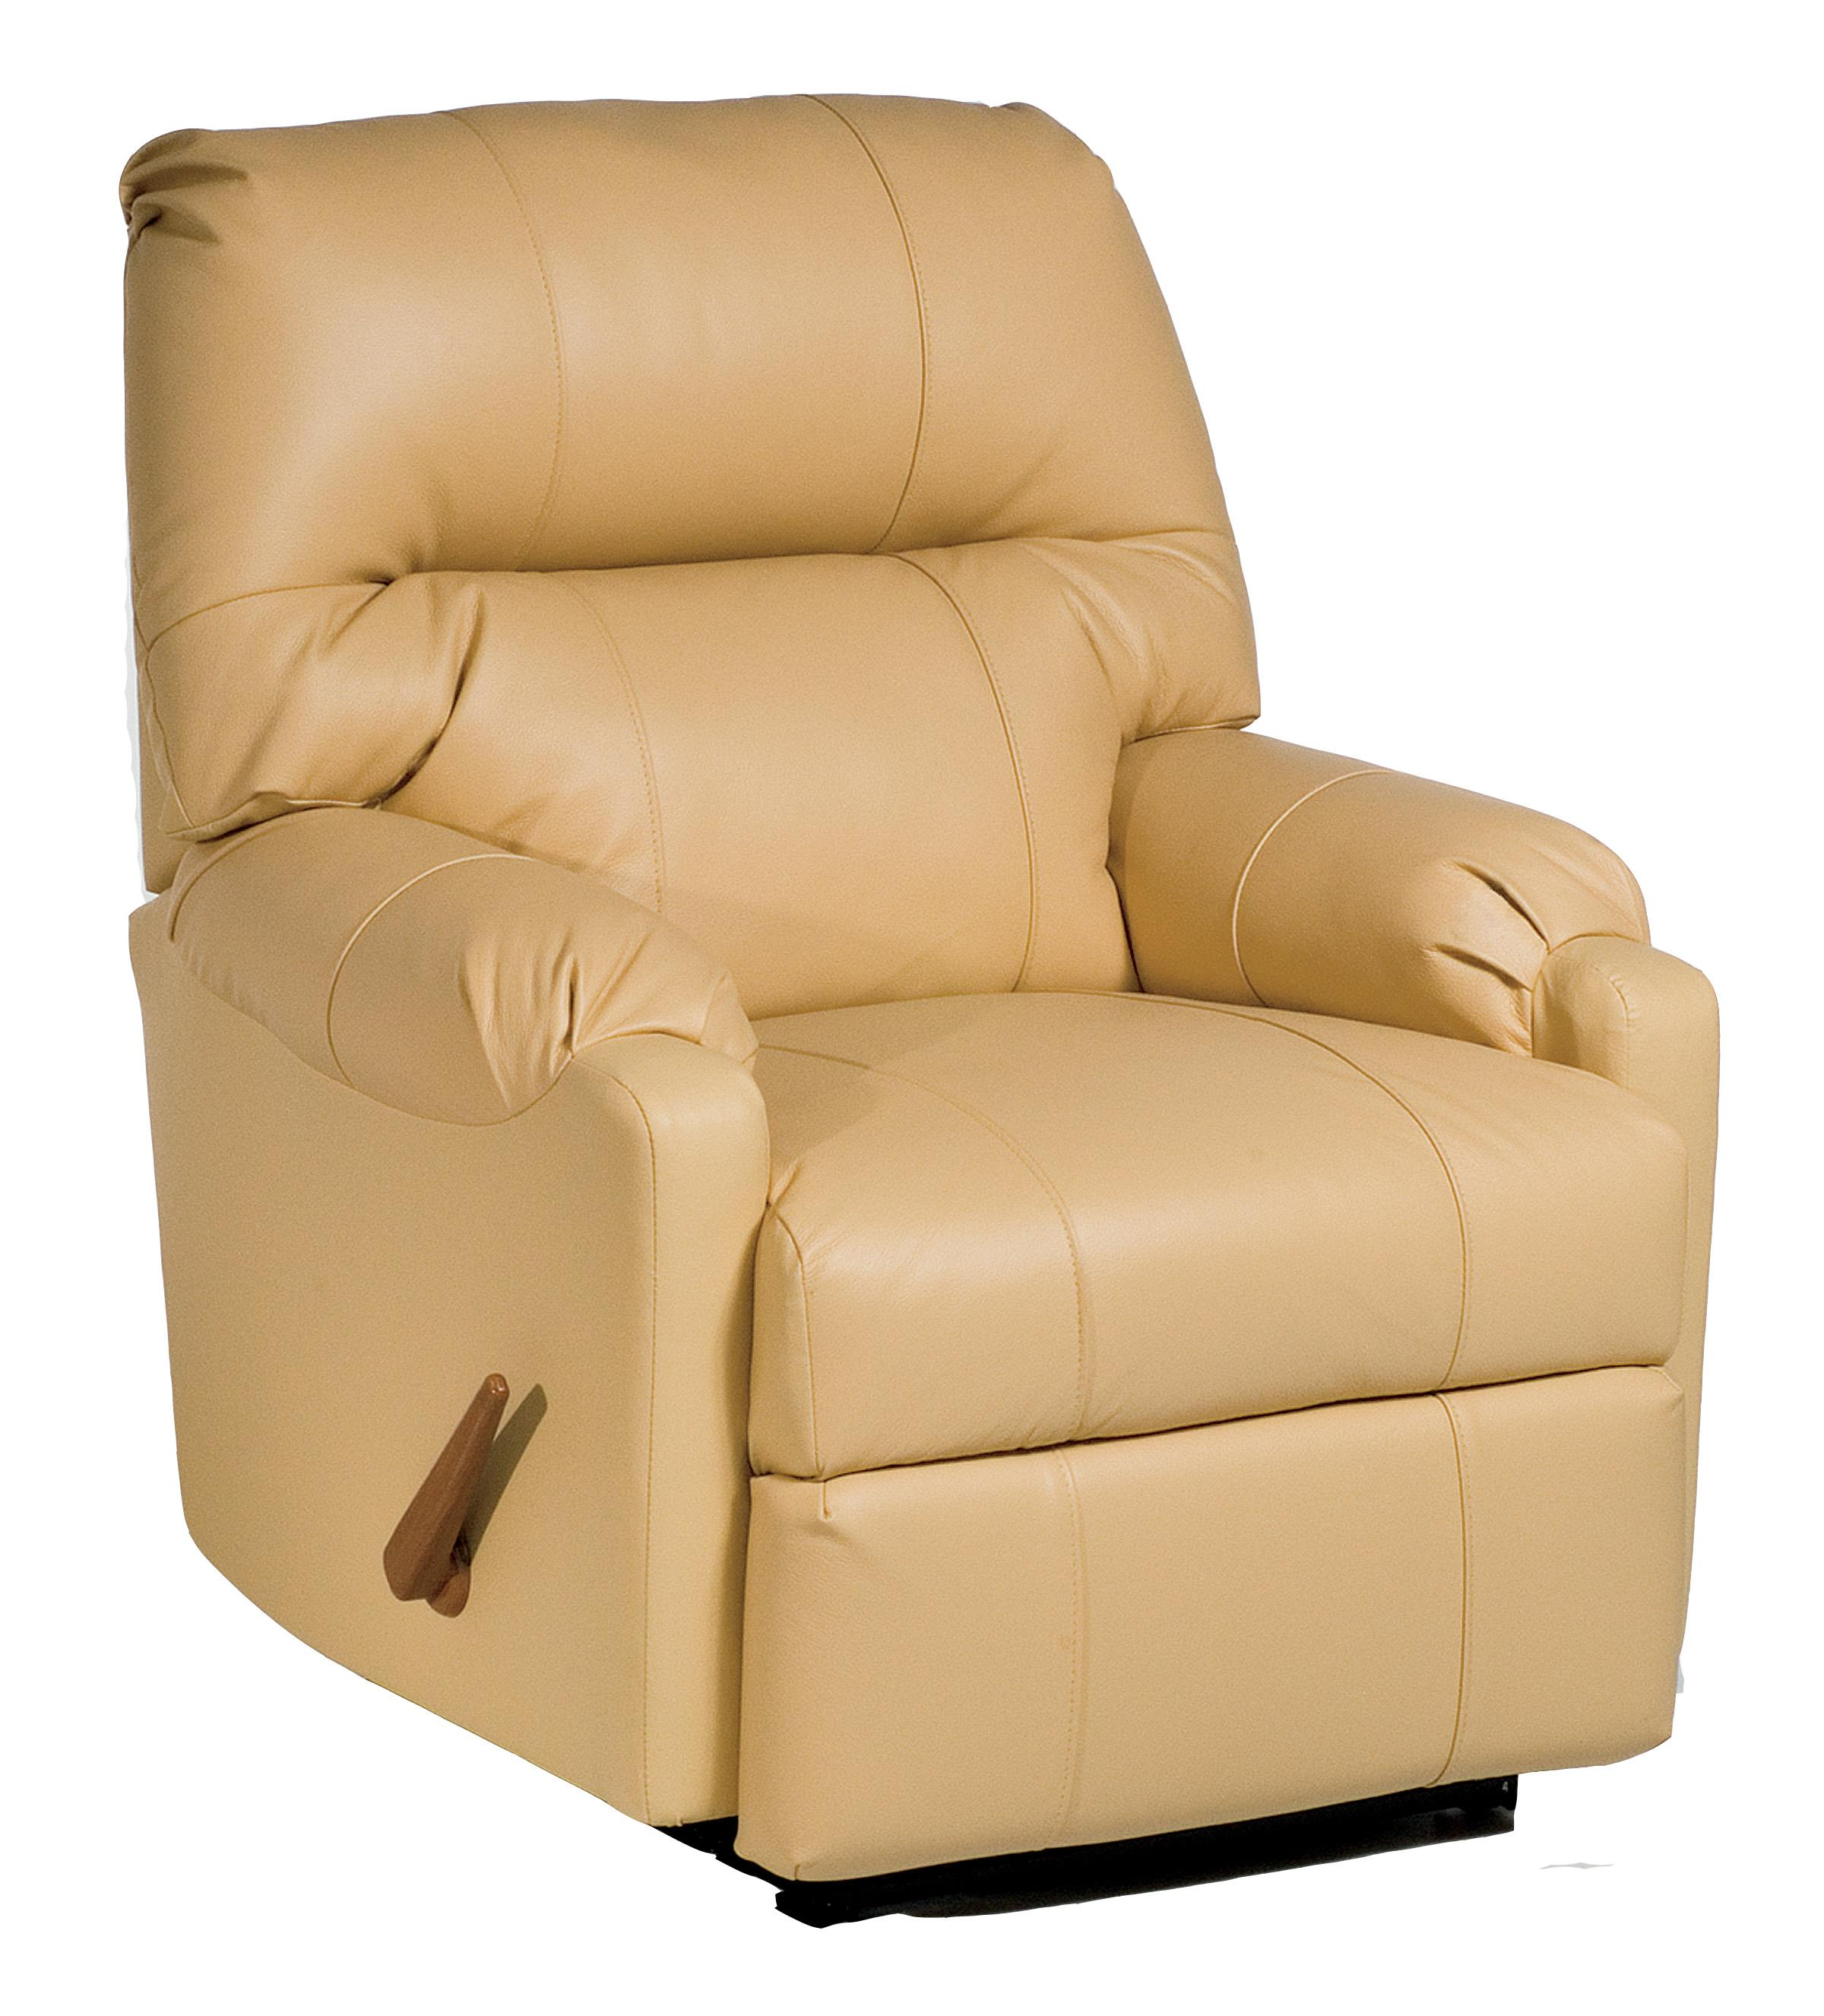 Petite Chairs Best Home Furnishings Petite Recliners 1aw37lv Jojo